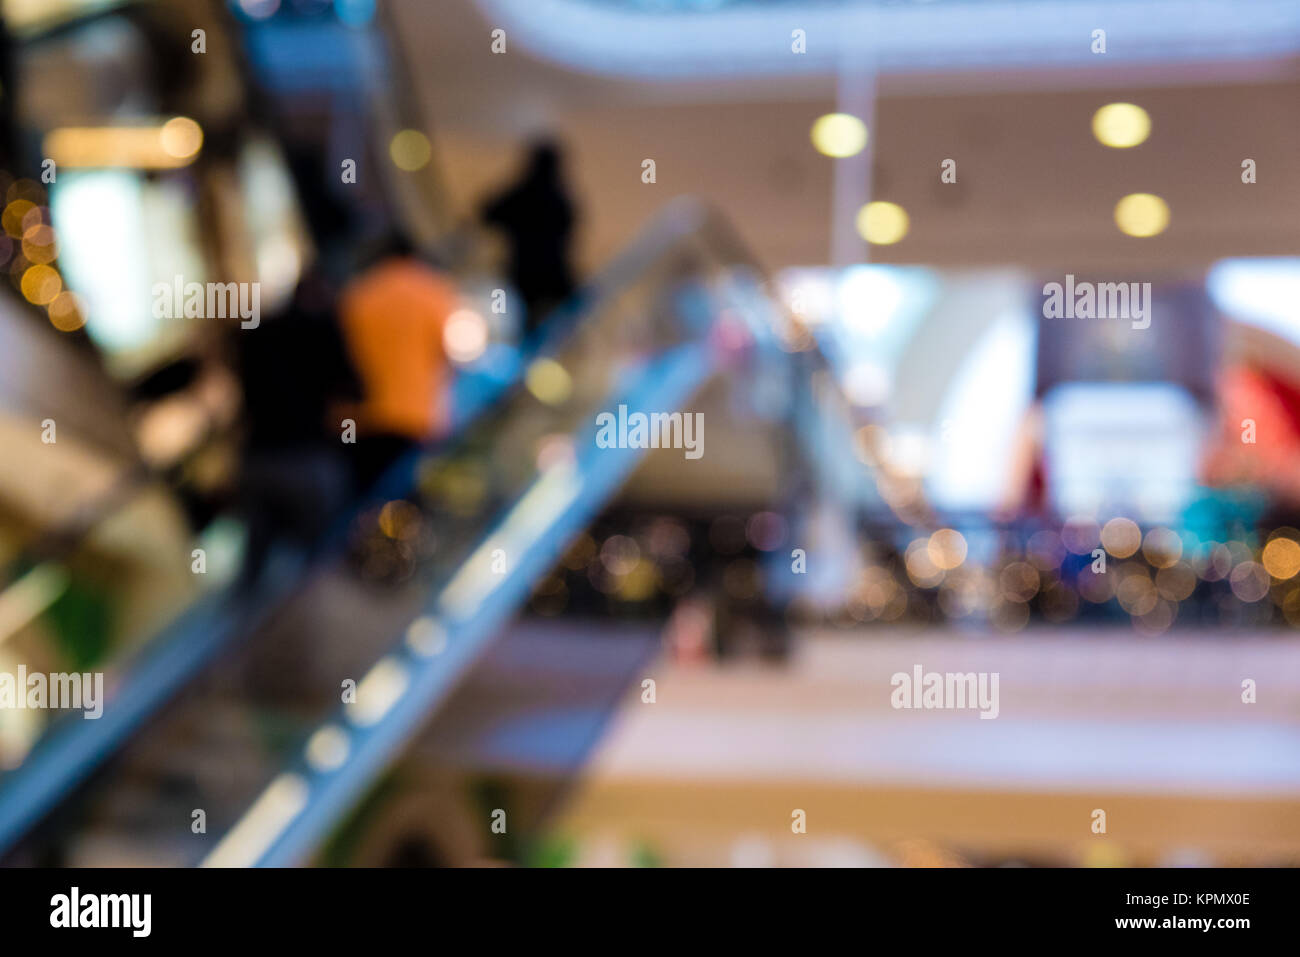 Blurred shopping mall staircase background - Stock Image